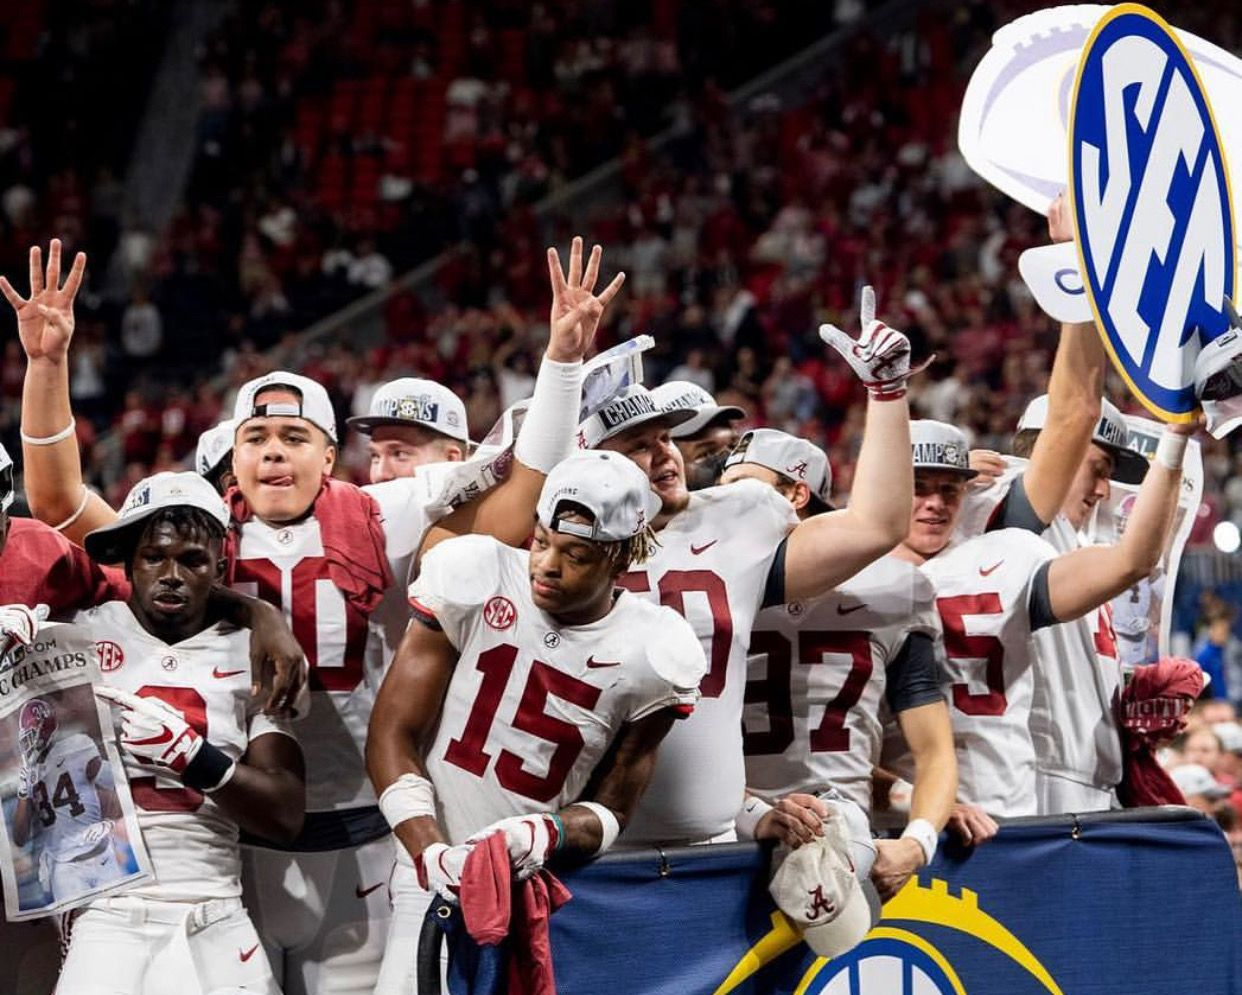 Alabama 35 28 in the 2018 SEC Championship game in